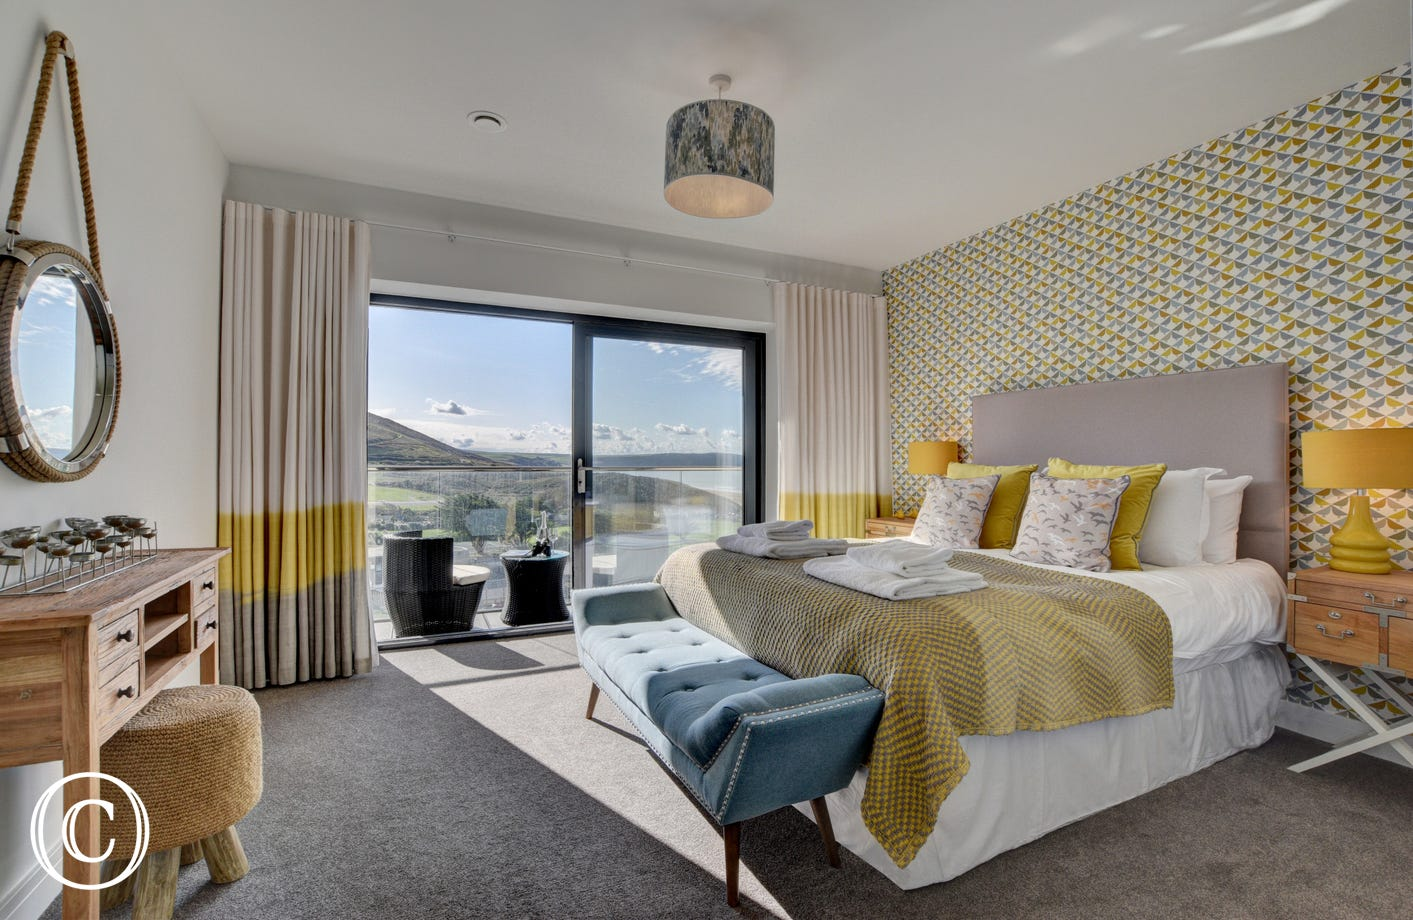 The spacious master king size bedroom has been stylishly decorated in yellows and greys